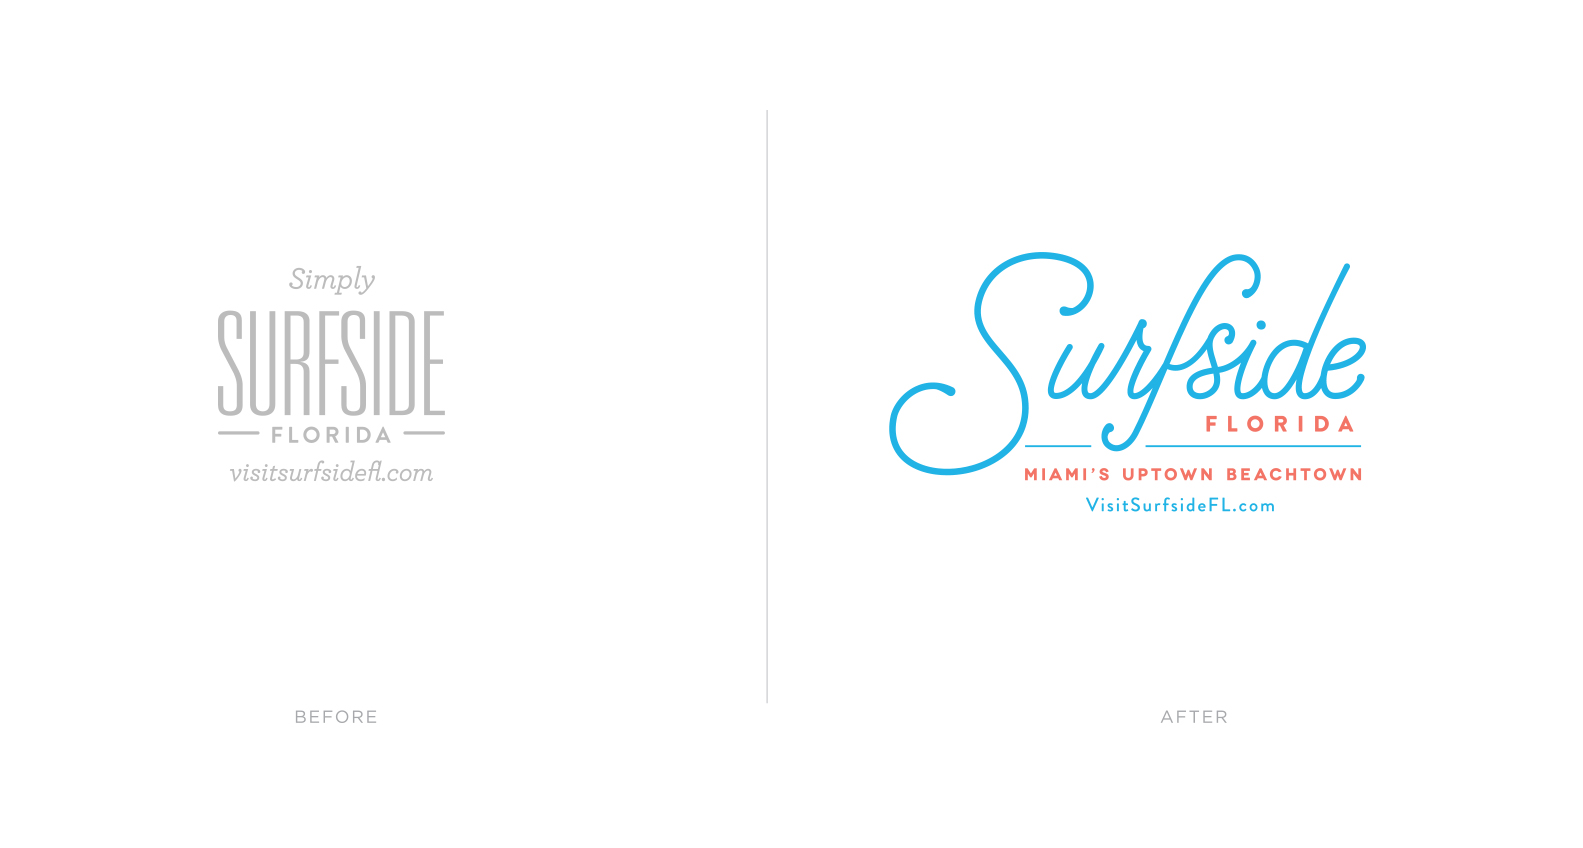 2-surfside-LOGO-beforeafter.jpg